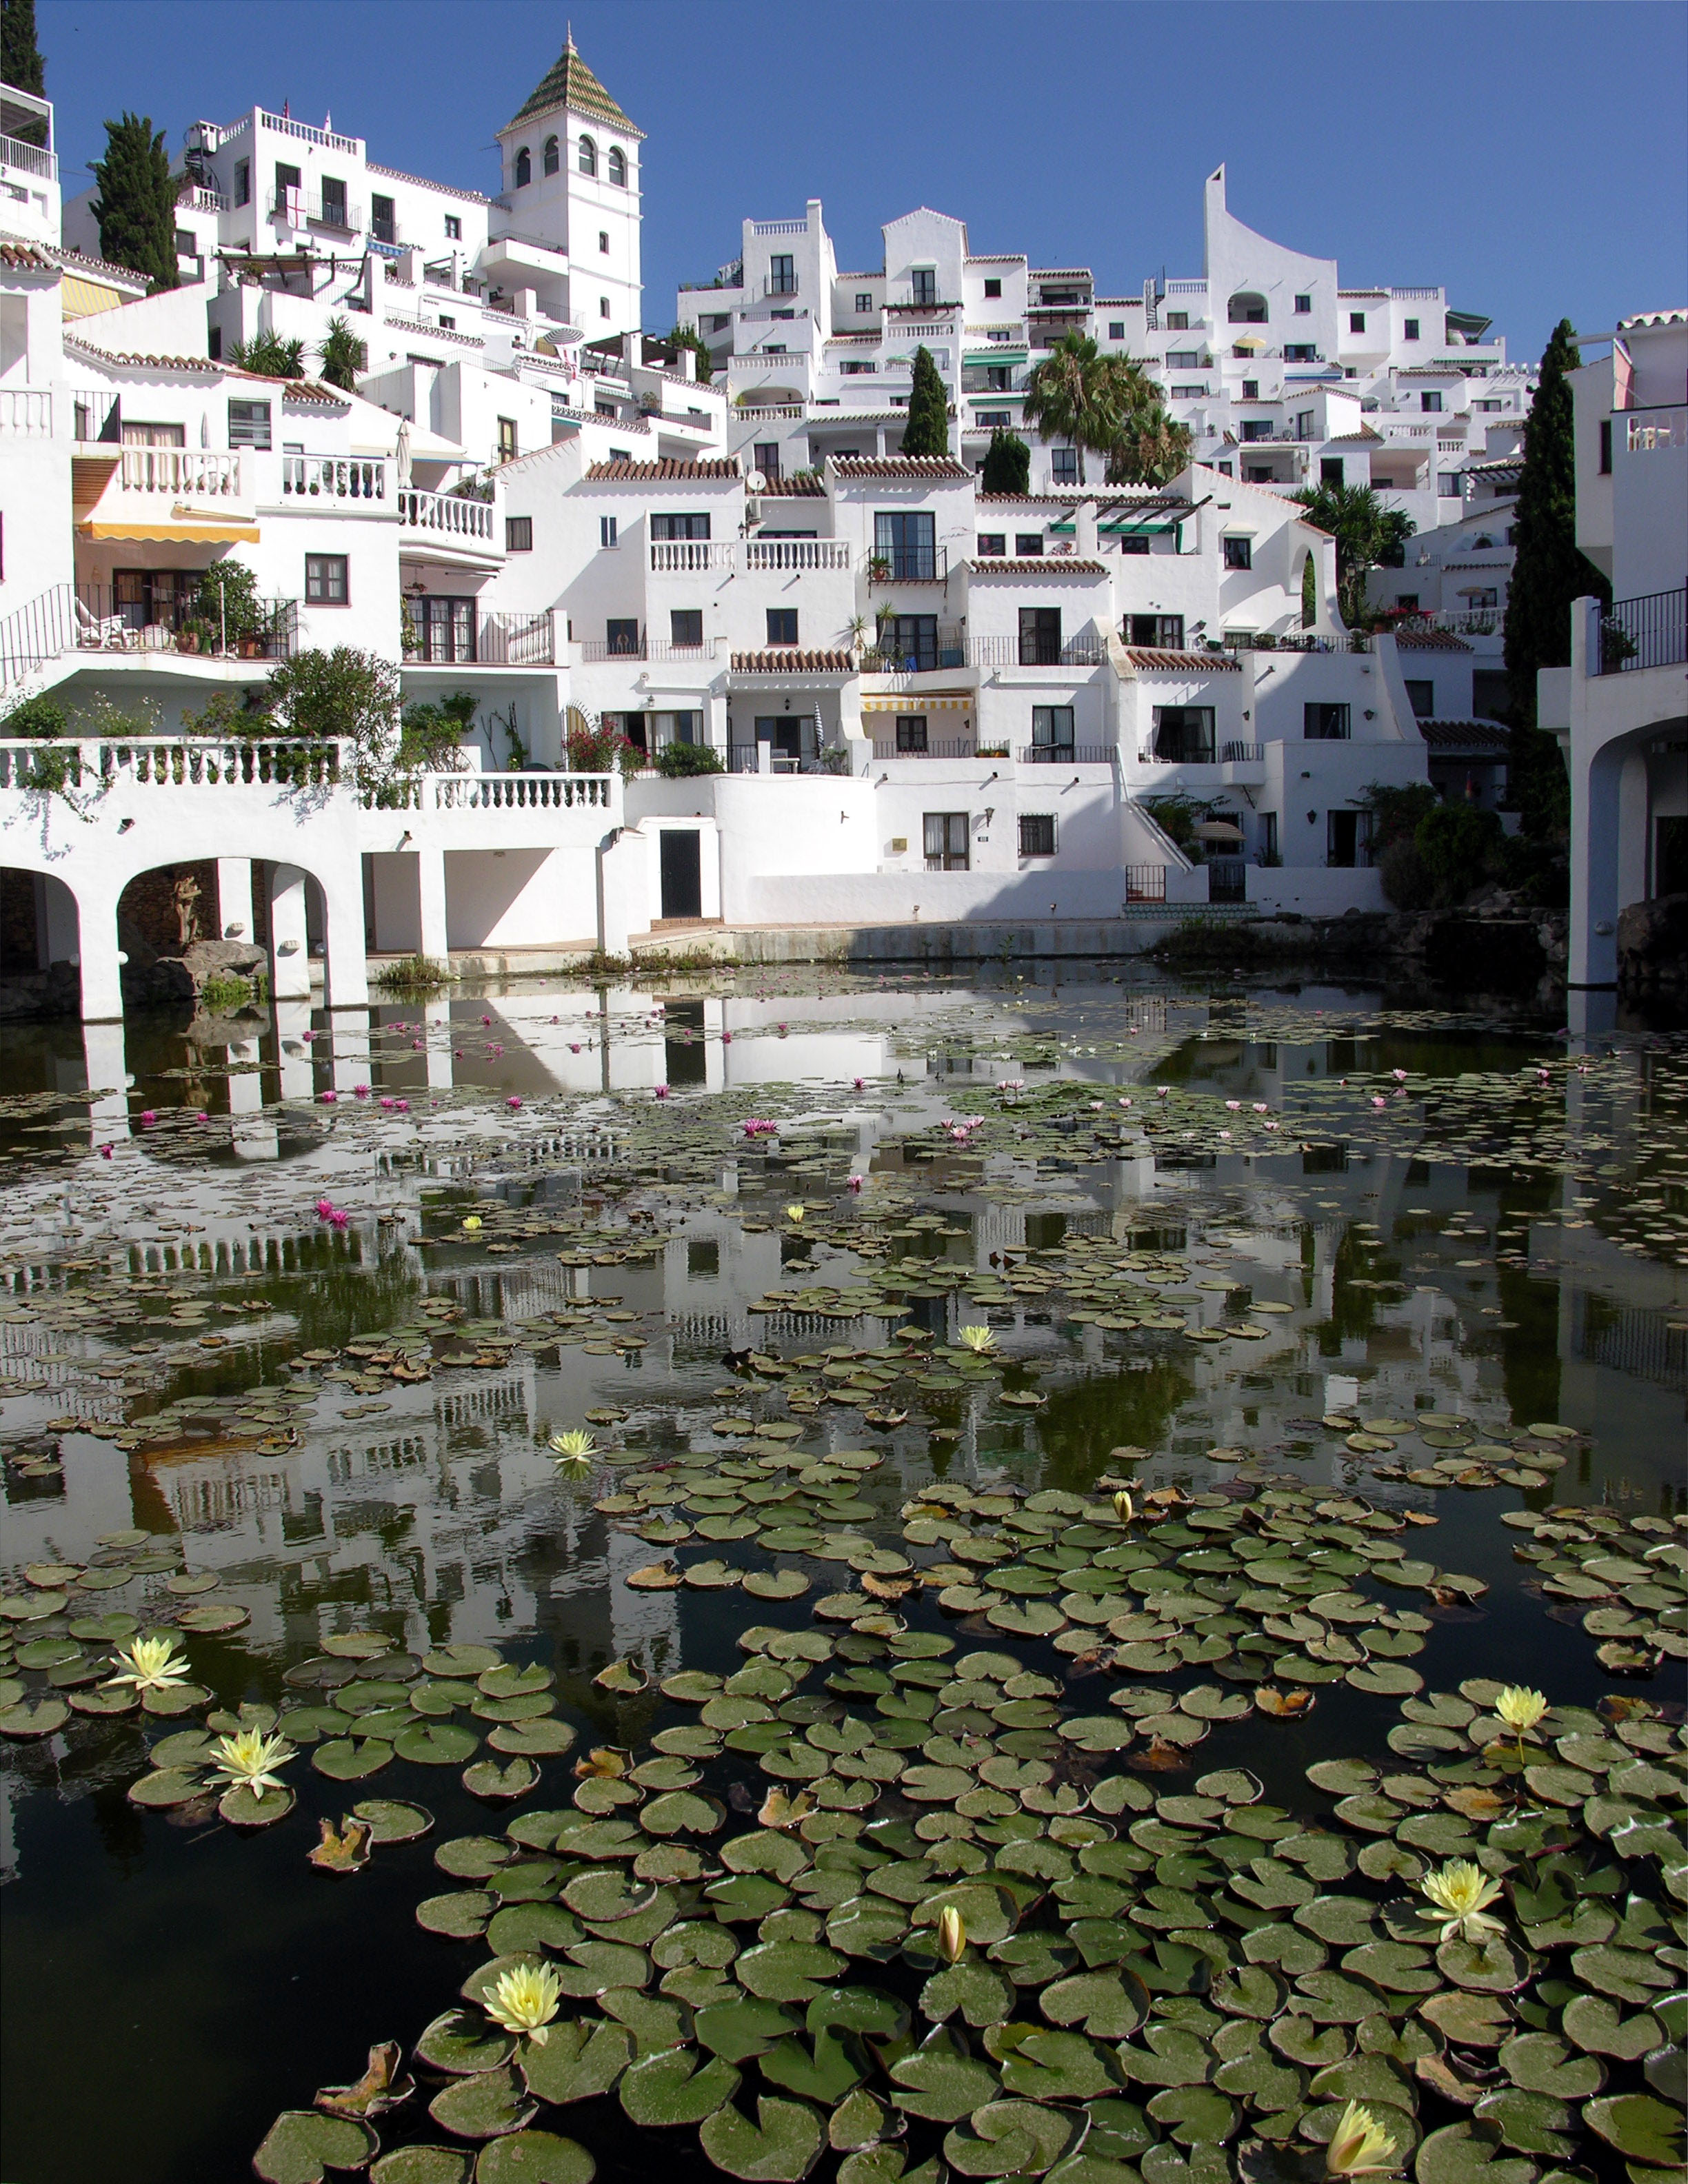 Nerja Spain  city pictures gallery : Nerja Capistrano Wikipedia, the free encyclopedia